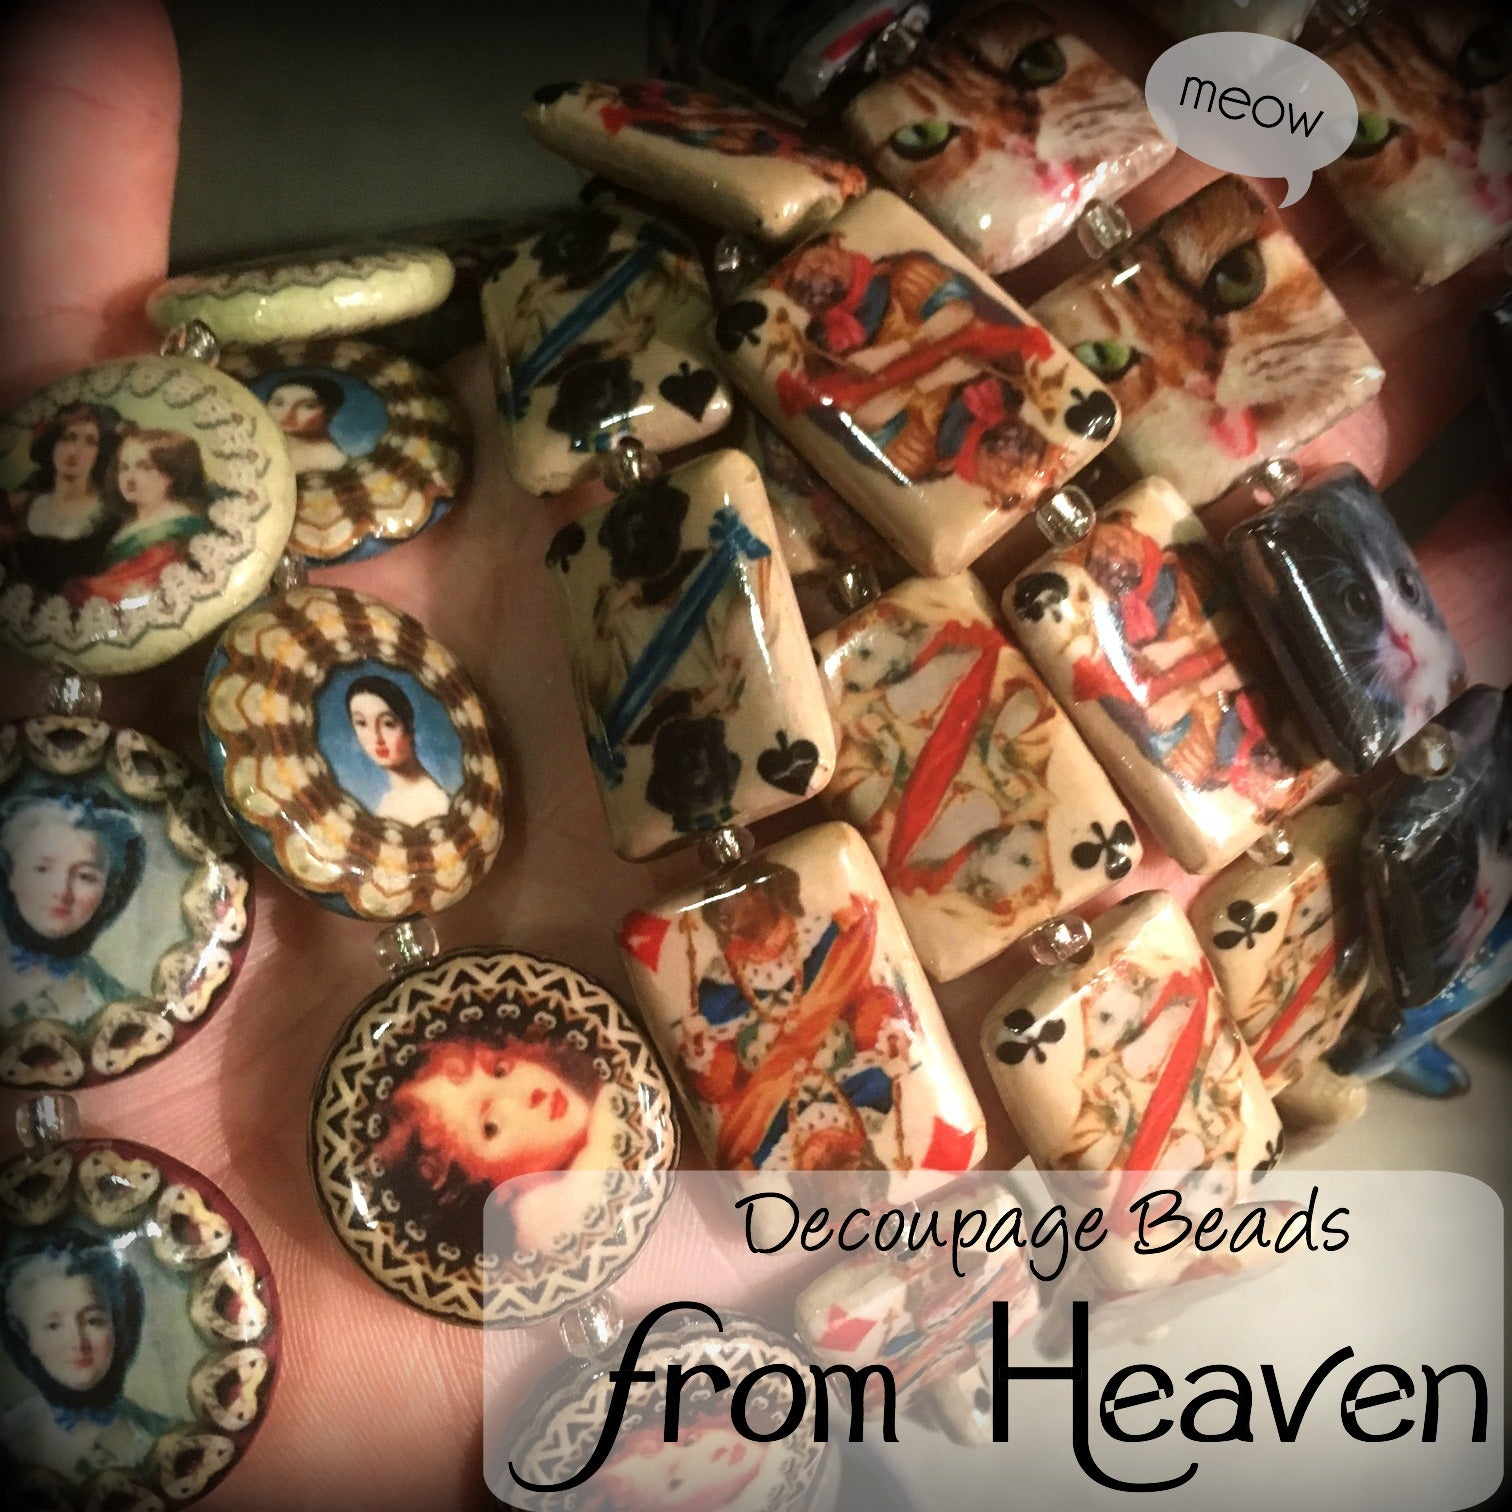 Graphic Decoupage Beads - Wooden Beads New to the Jesse James Beads line